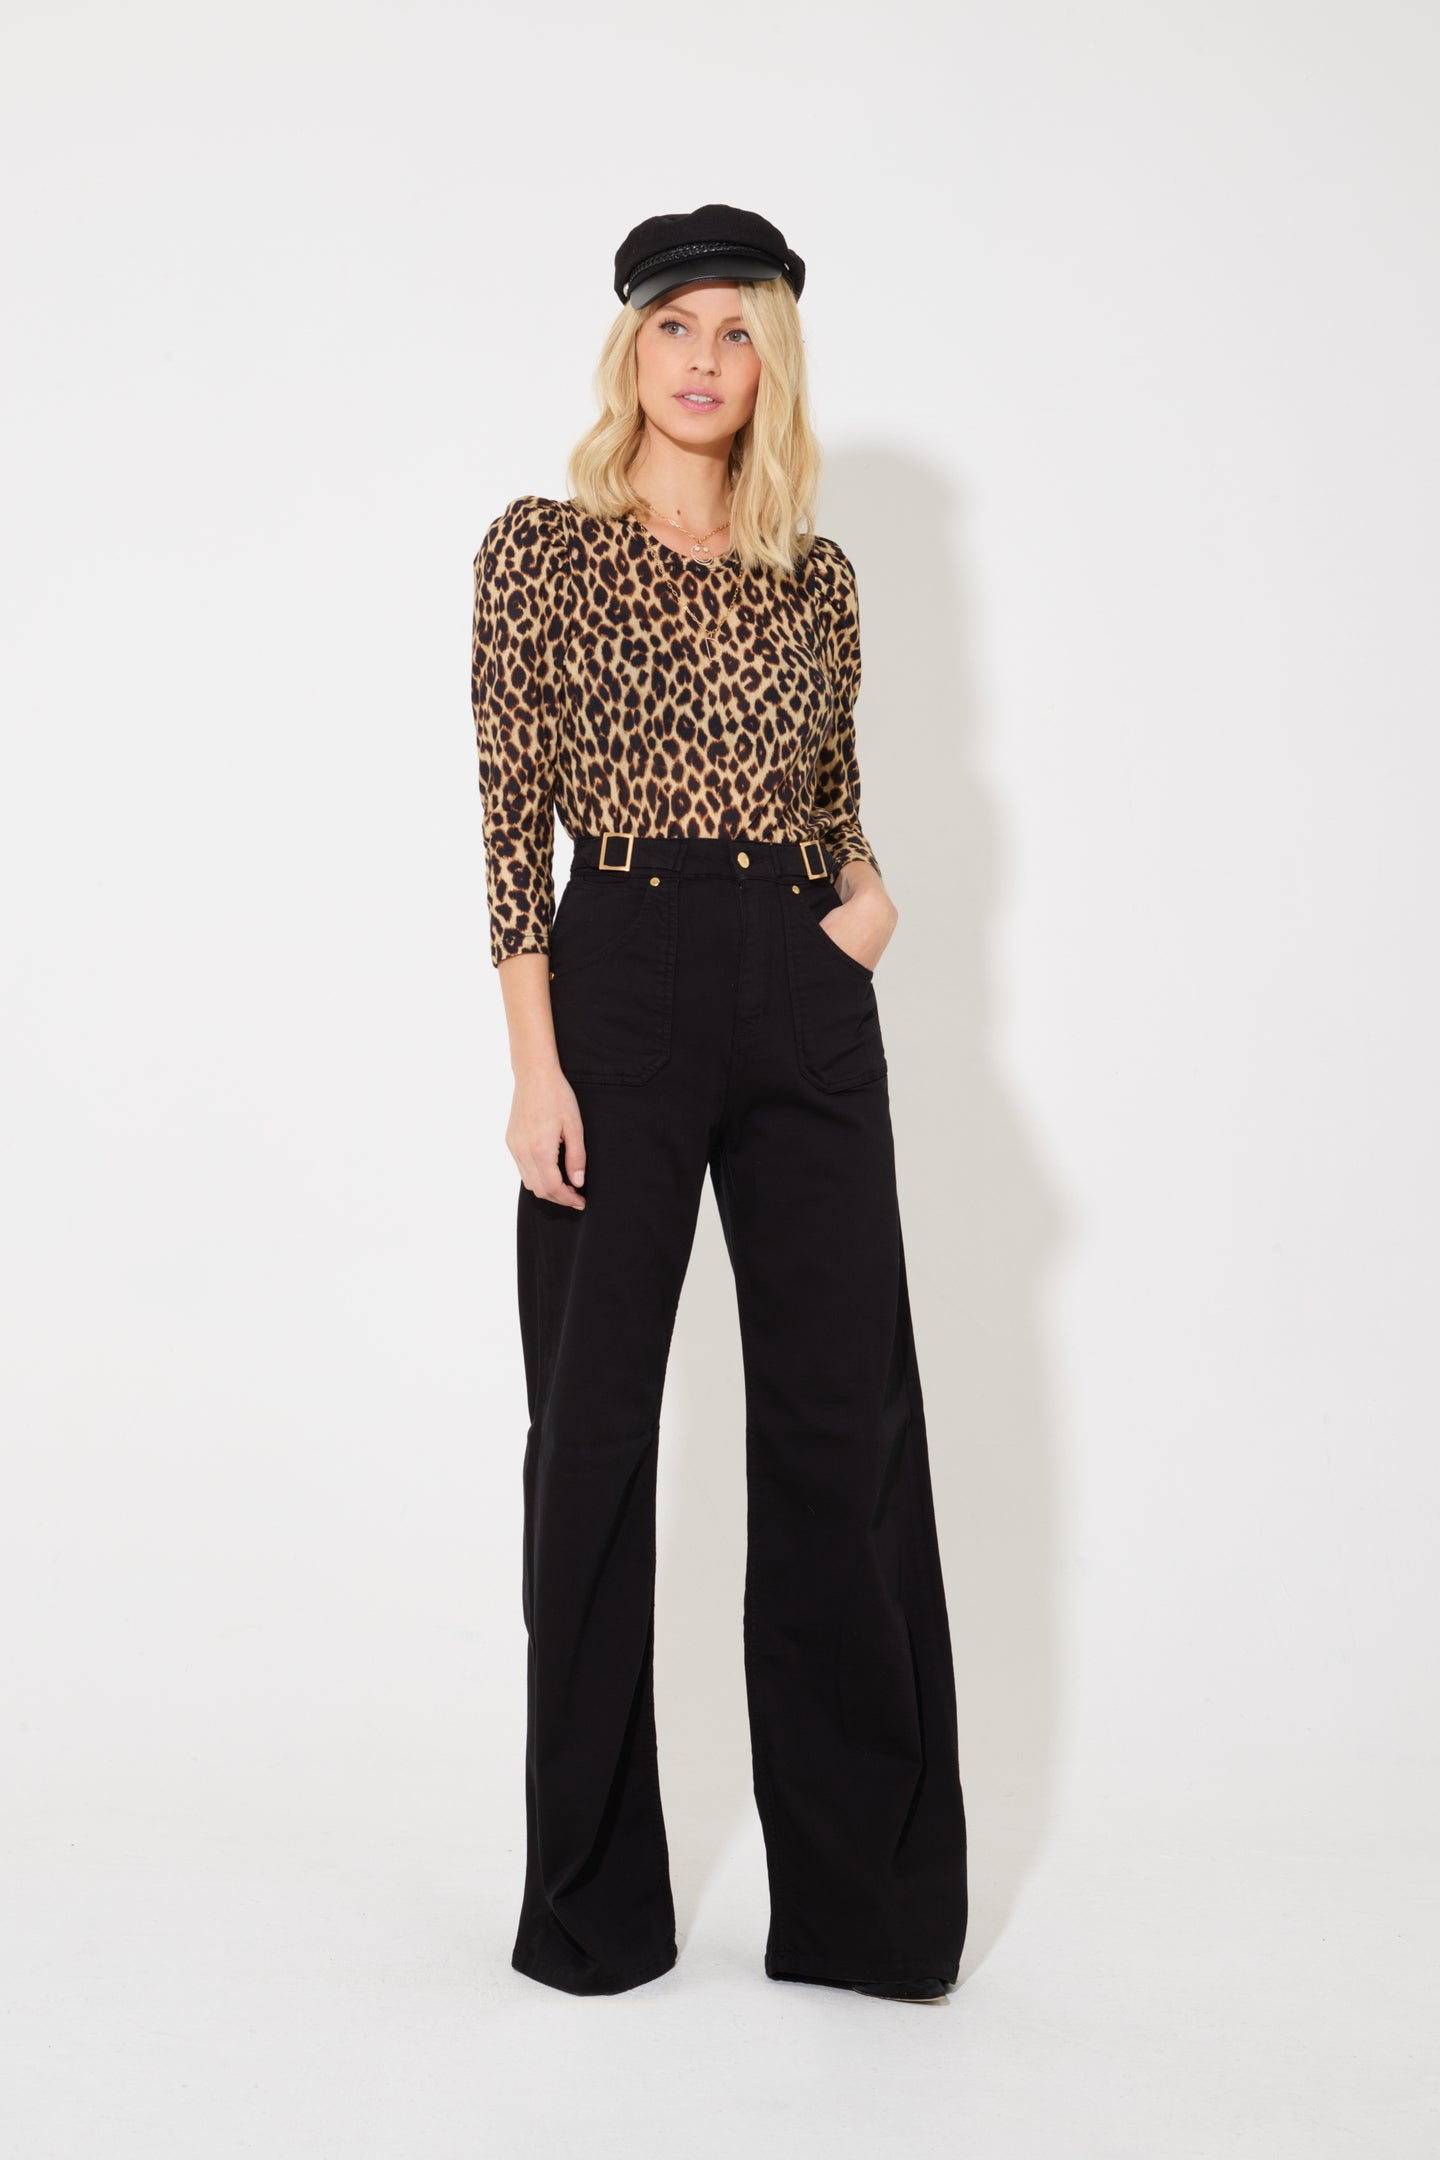 Minnie The High Top Flared Jeans - Blackest